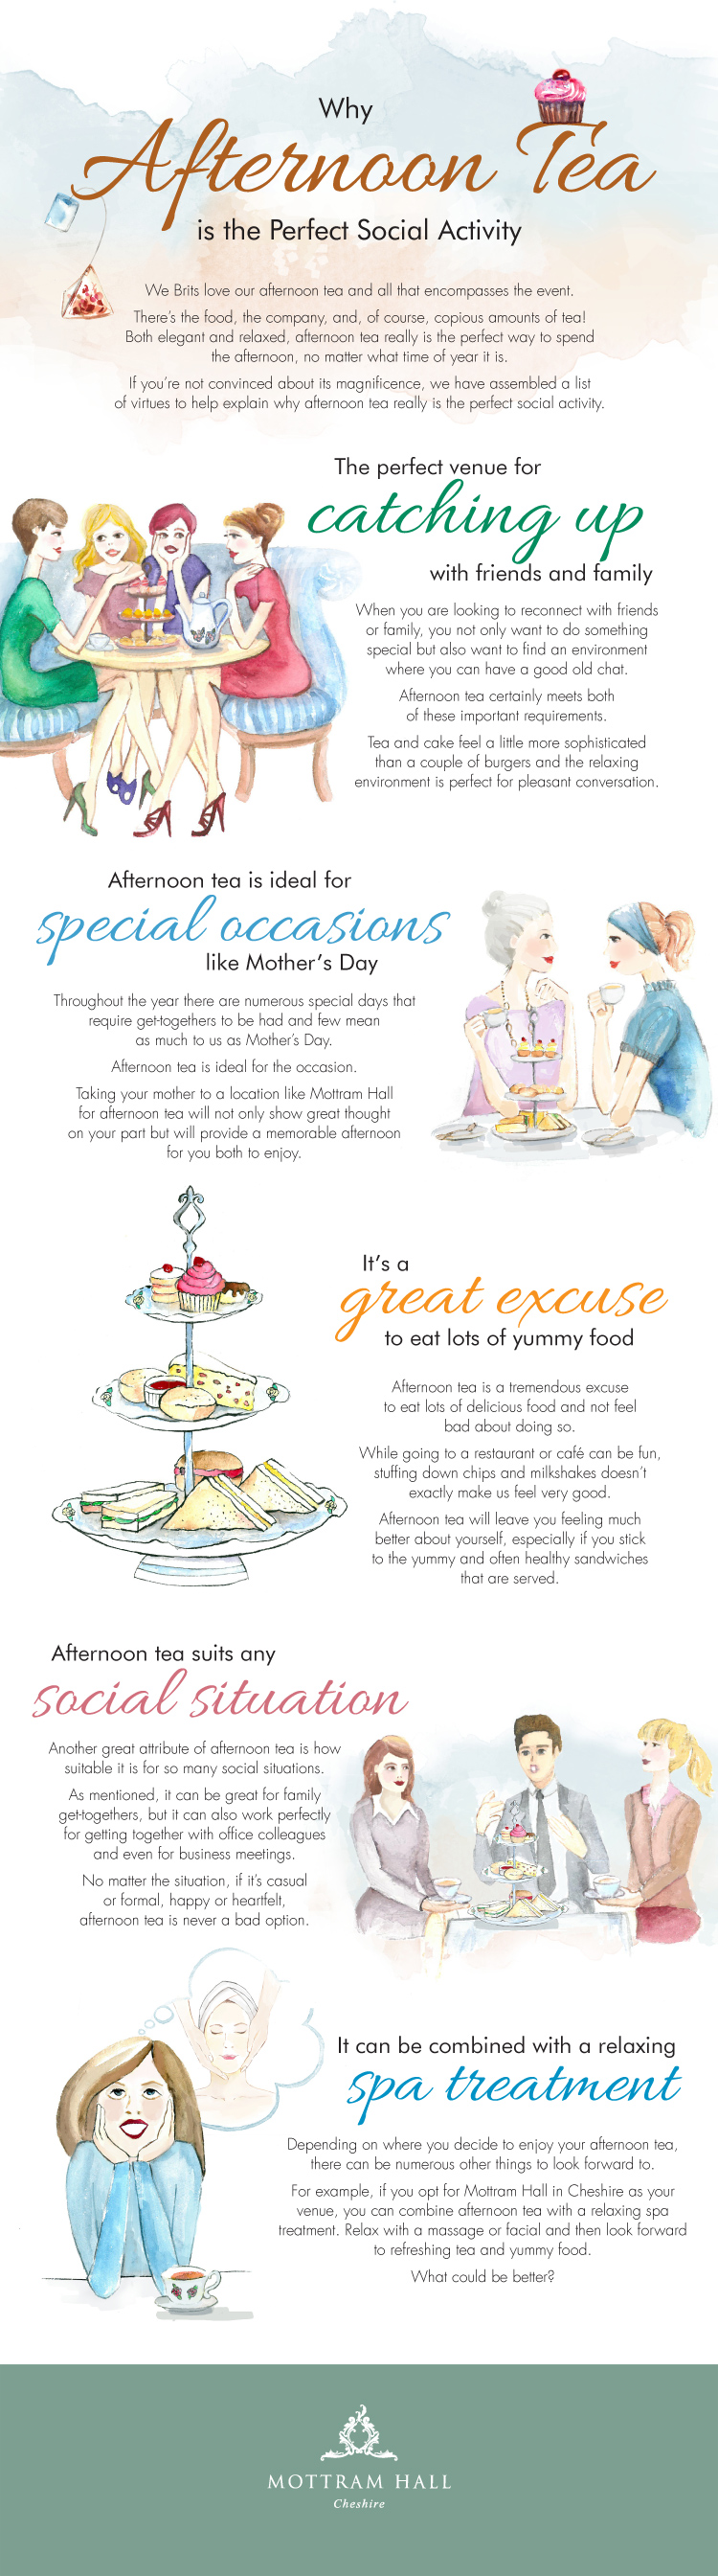 Afternoon-tea-infographic